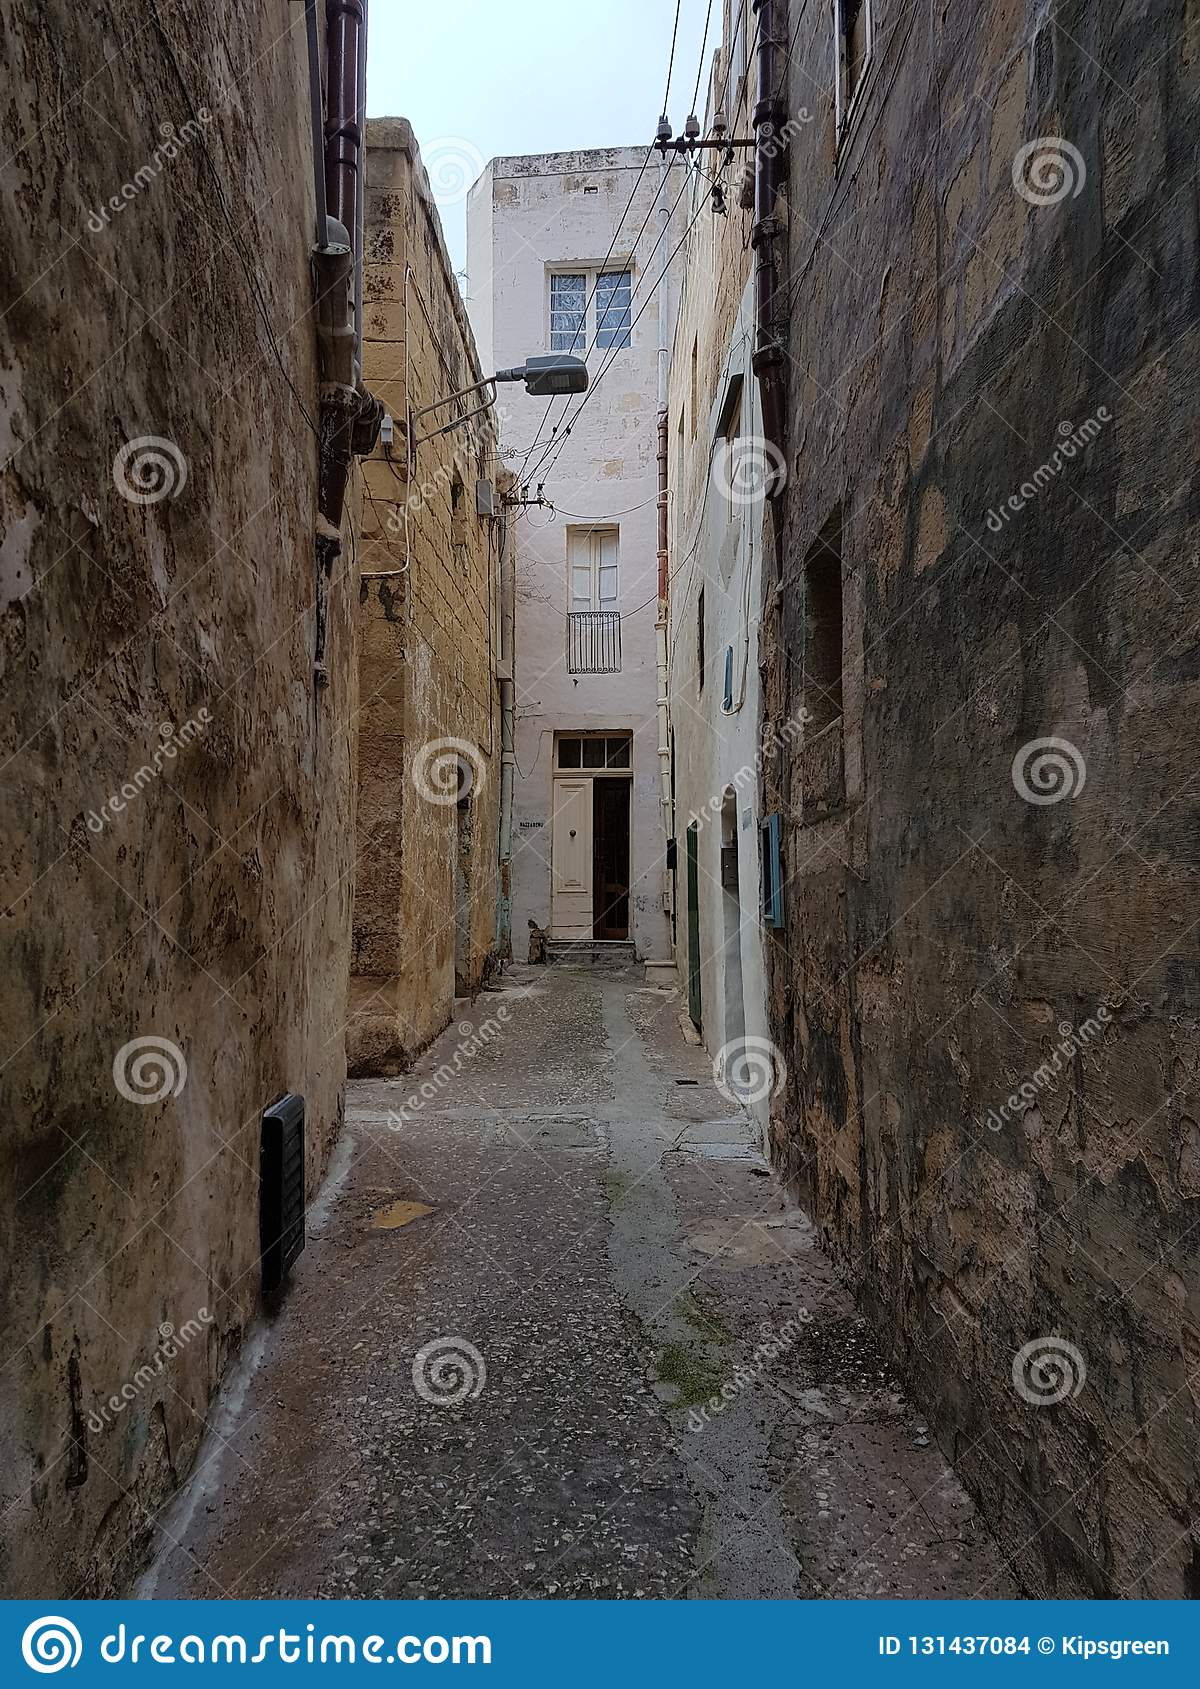 Village Life, Through The Open Door Editorial Stock Image - Image of